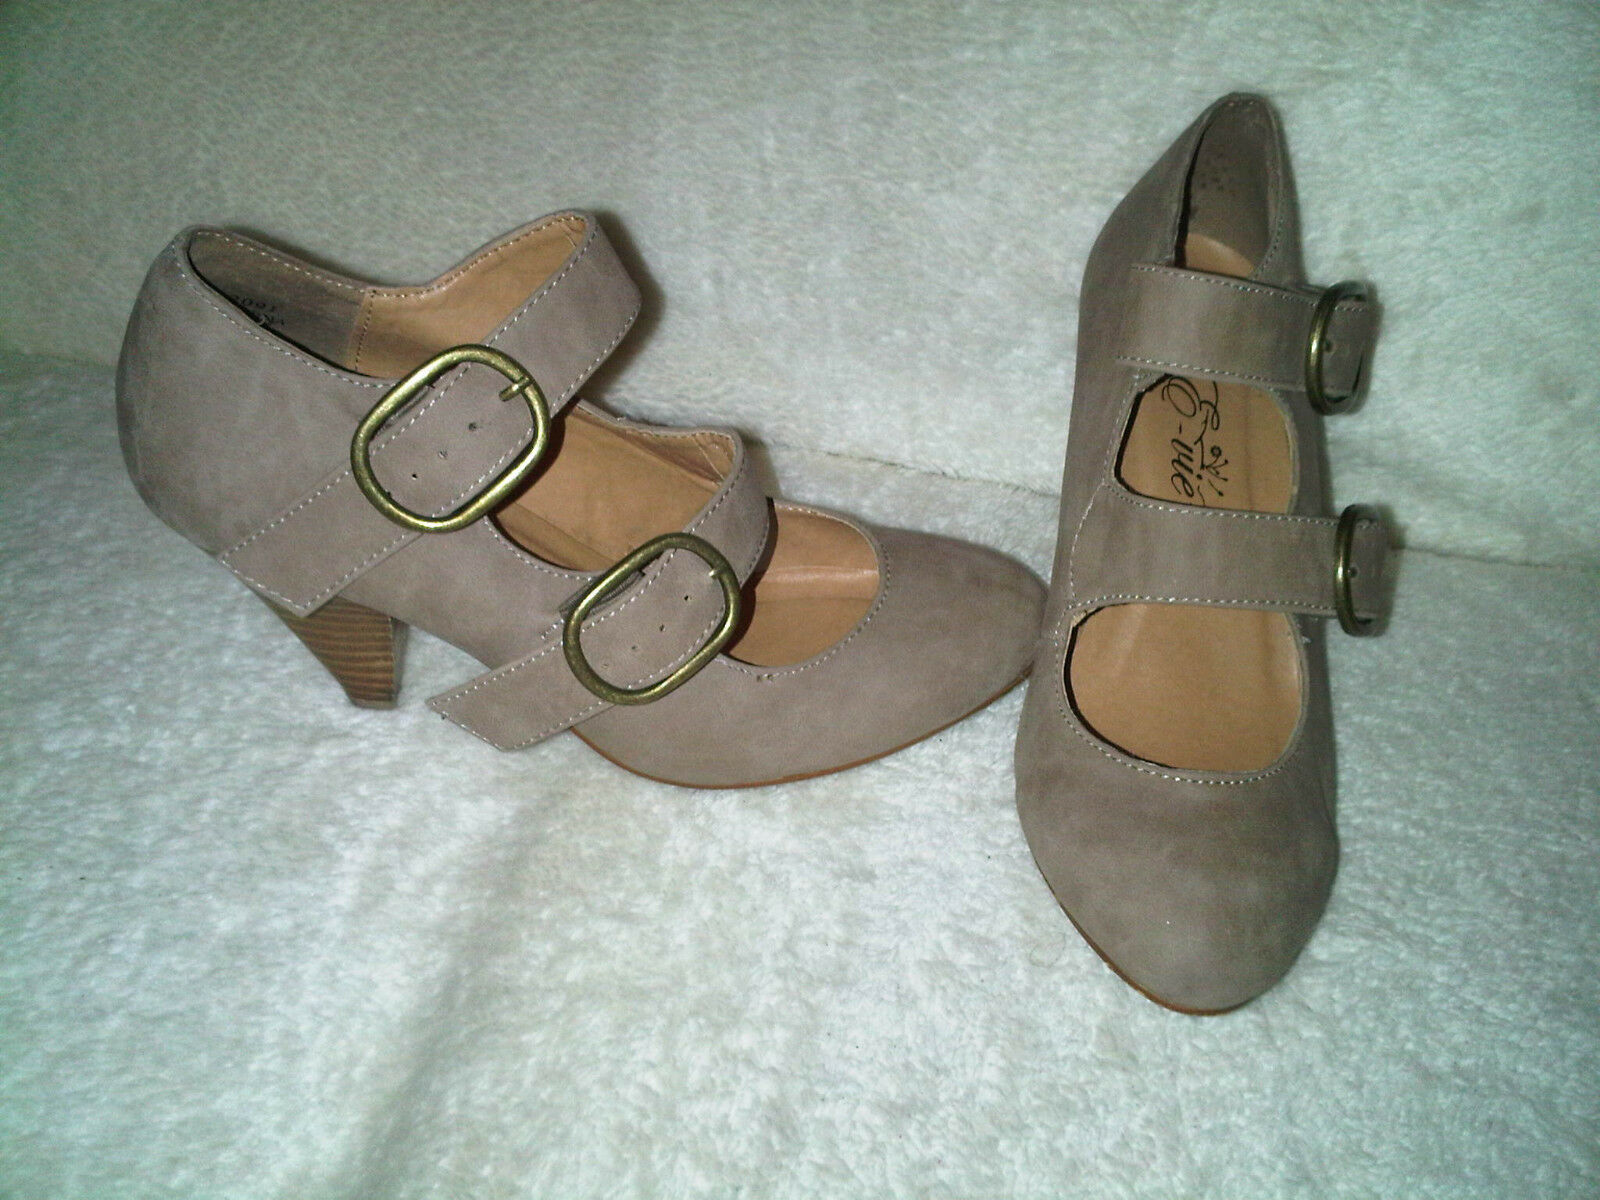 Moda jest prosta i niedroga Shoes tan suede with two buckles on side marking evie